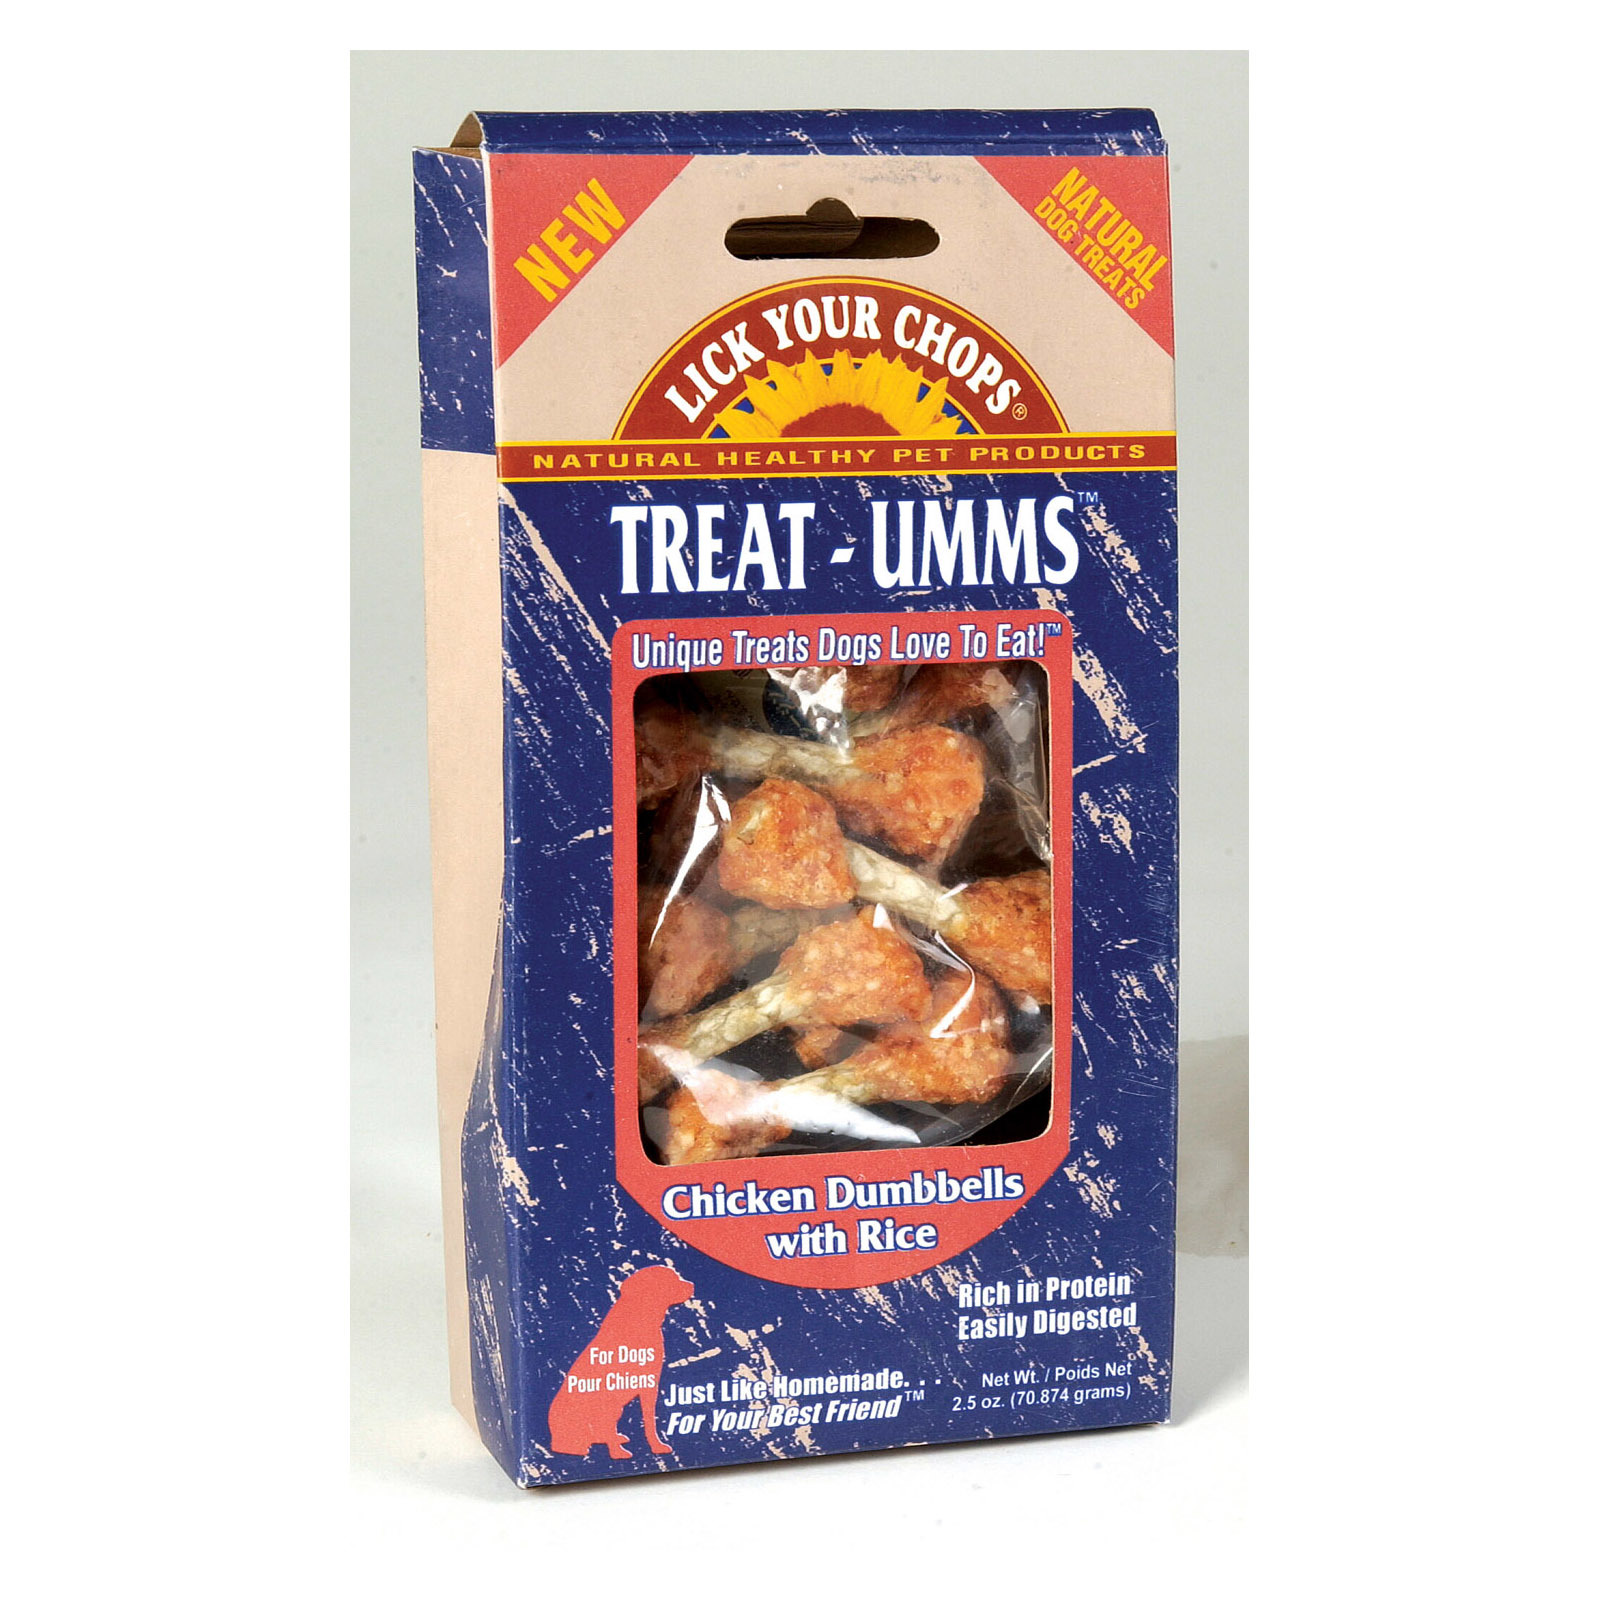 Lick Your Chops Treat - Umms Dog Treats - Chicken Dumbell - Case of 6 - 2.5 oz.